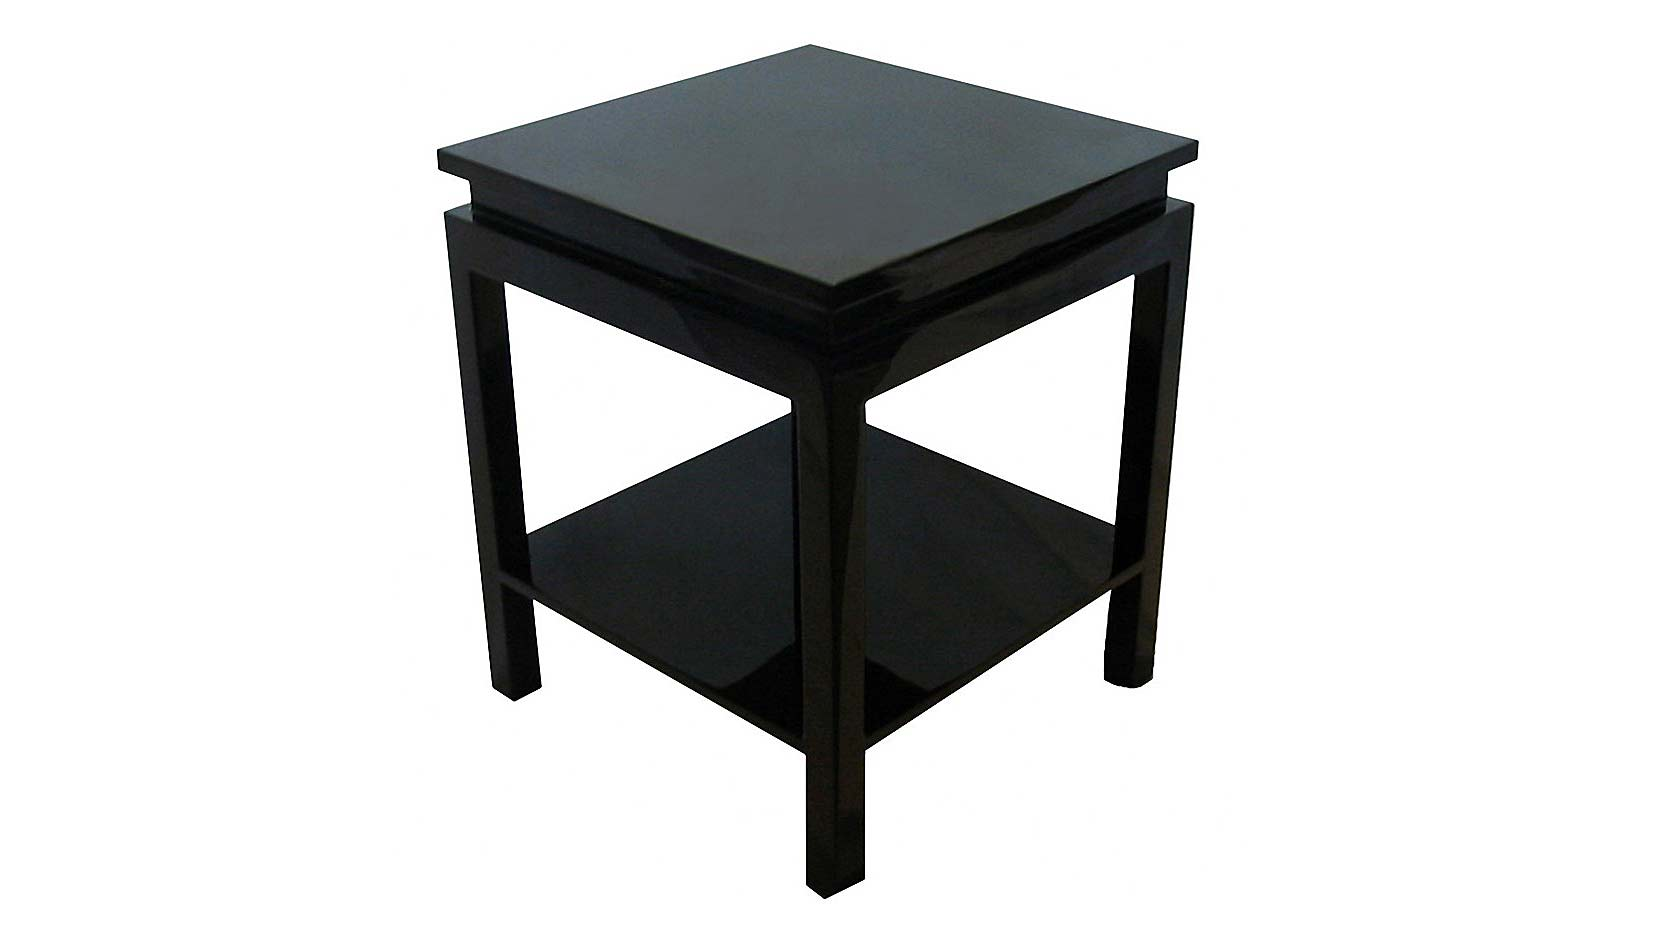 ming end table with shelf, lacquered